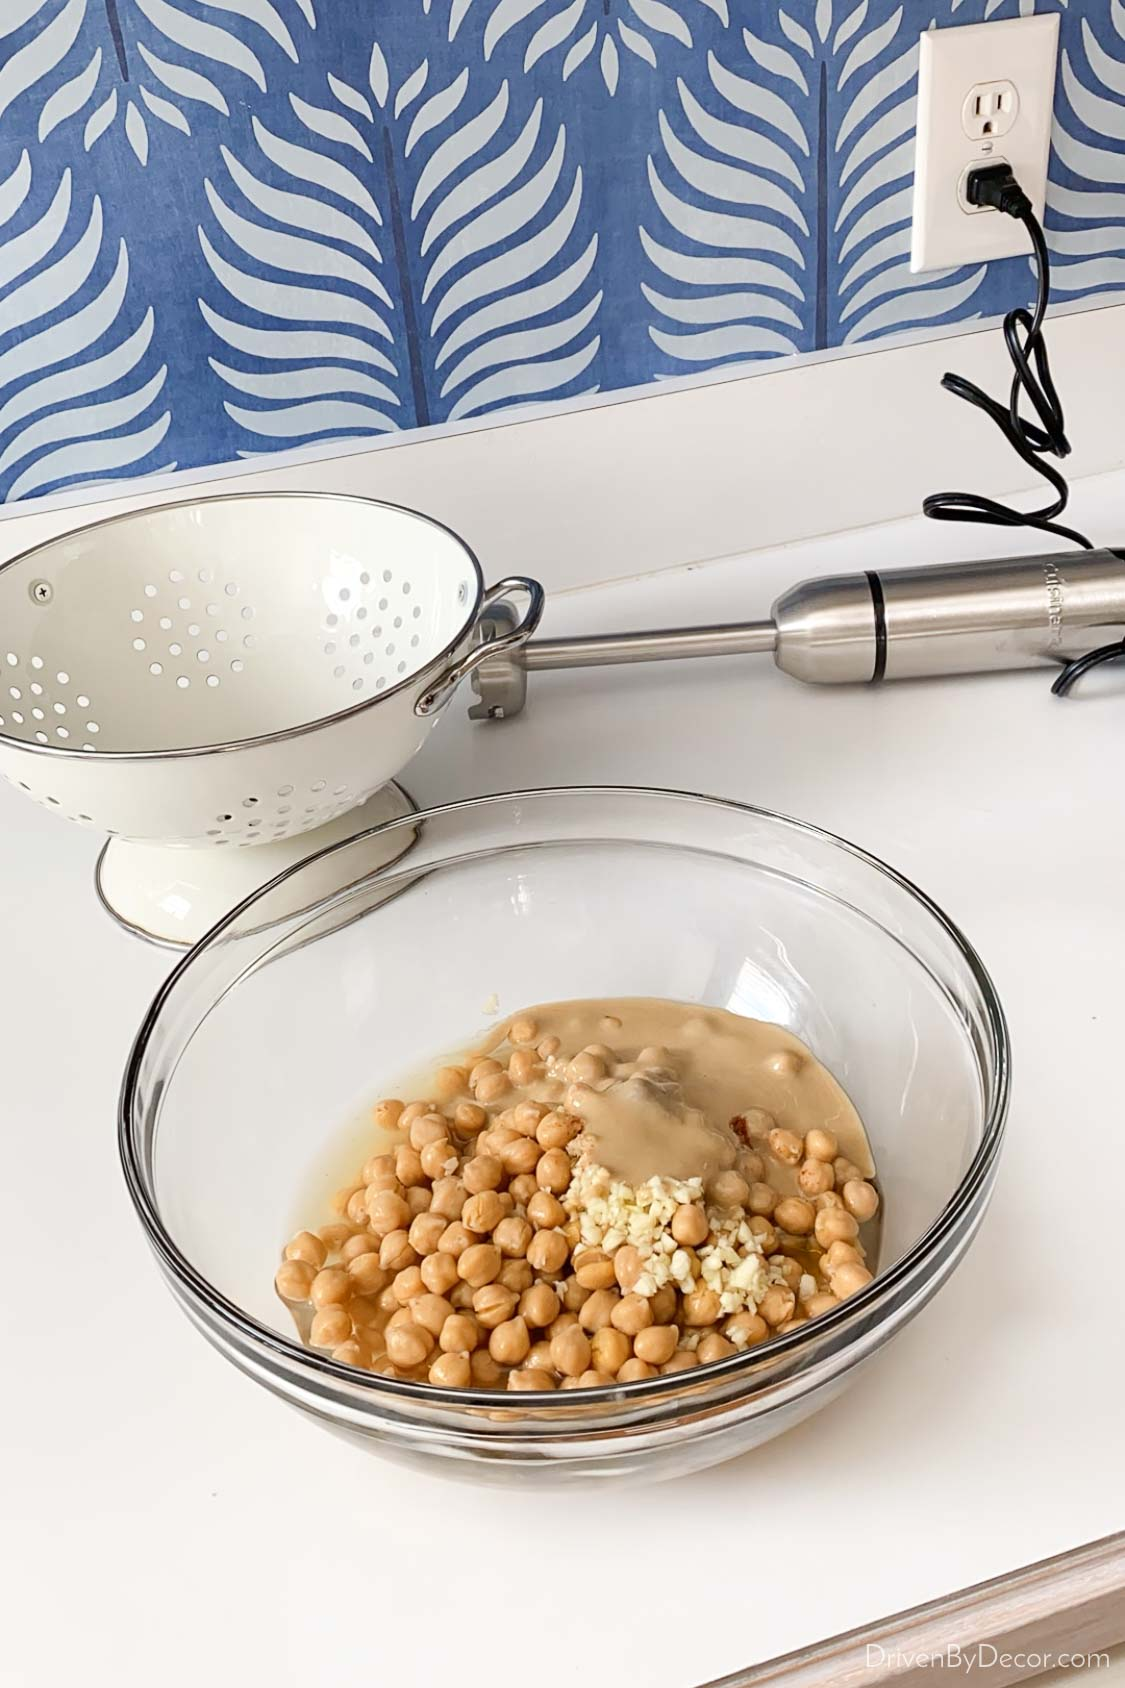 Making hummus with my immersion hand blender!